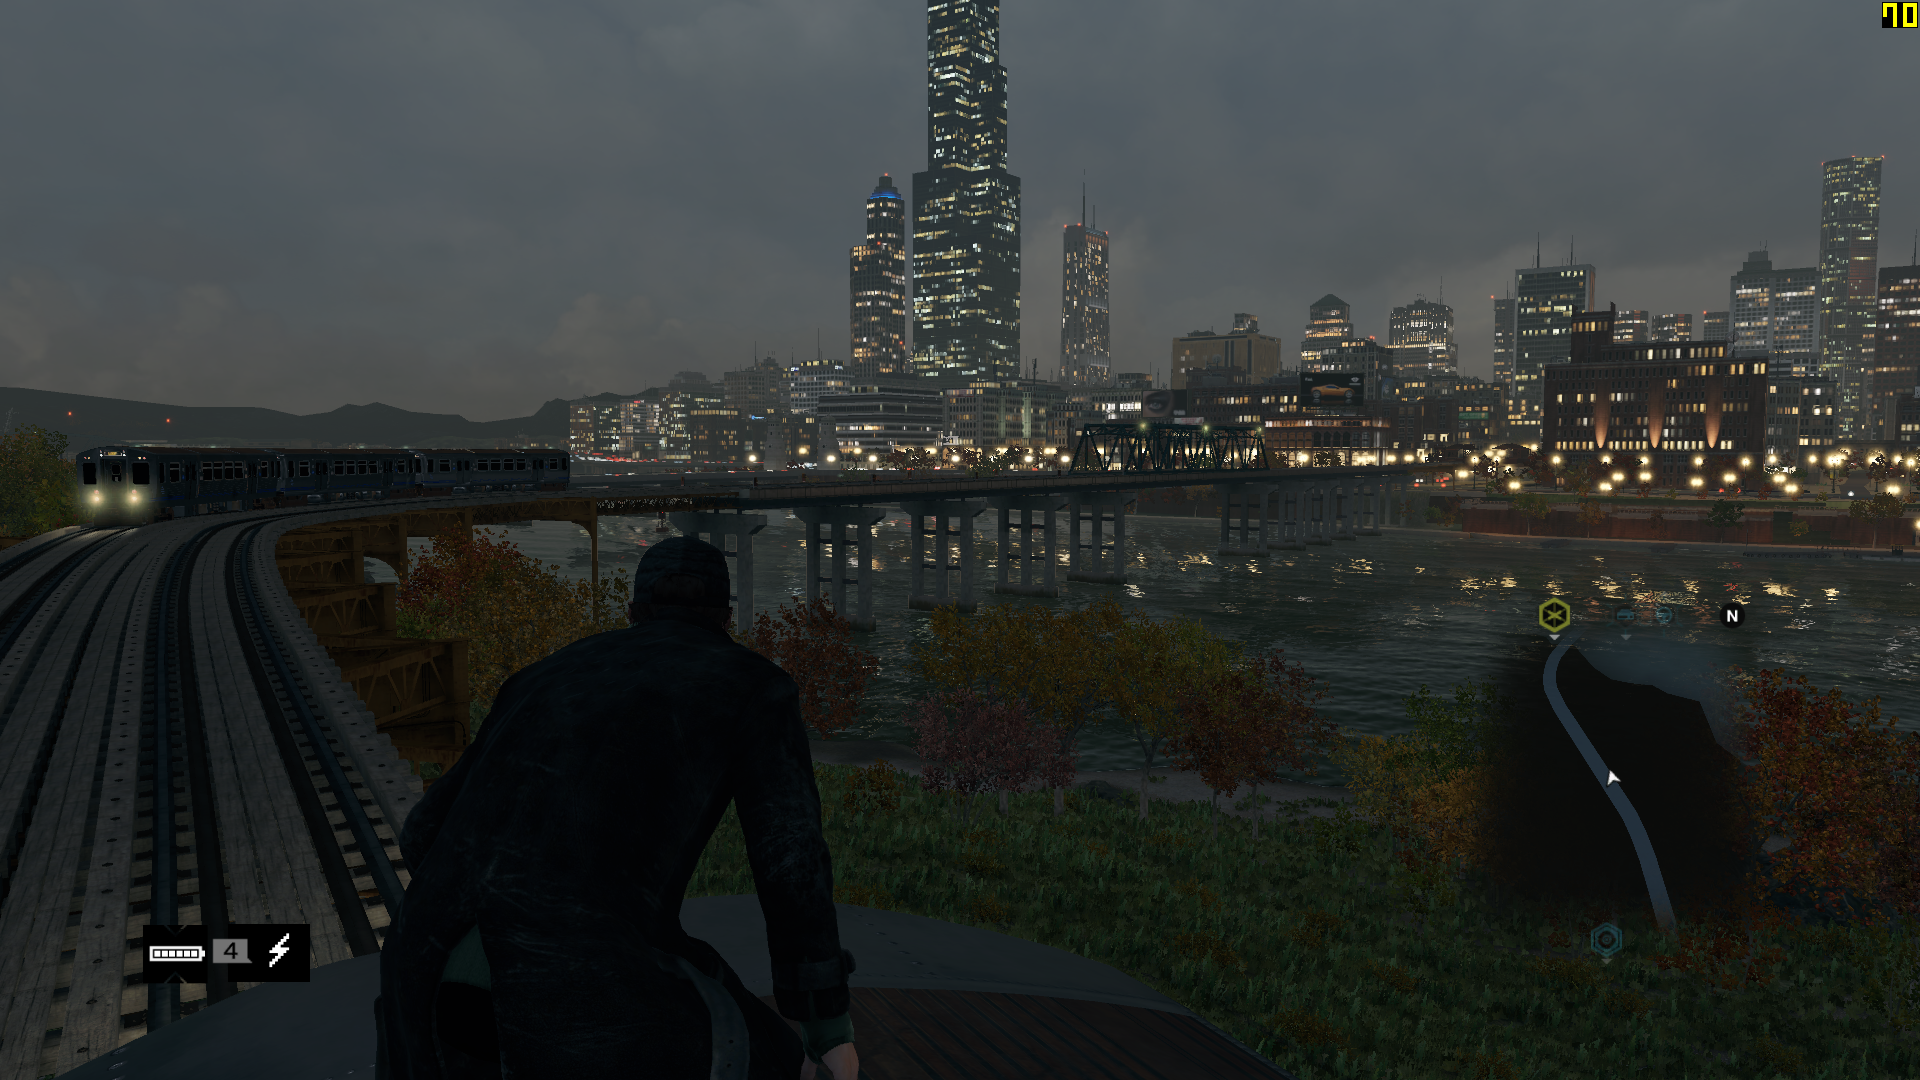 watch_dogs2014-06-010bguyy.png